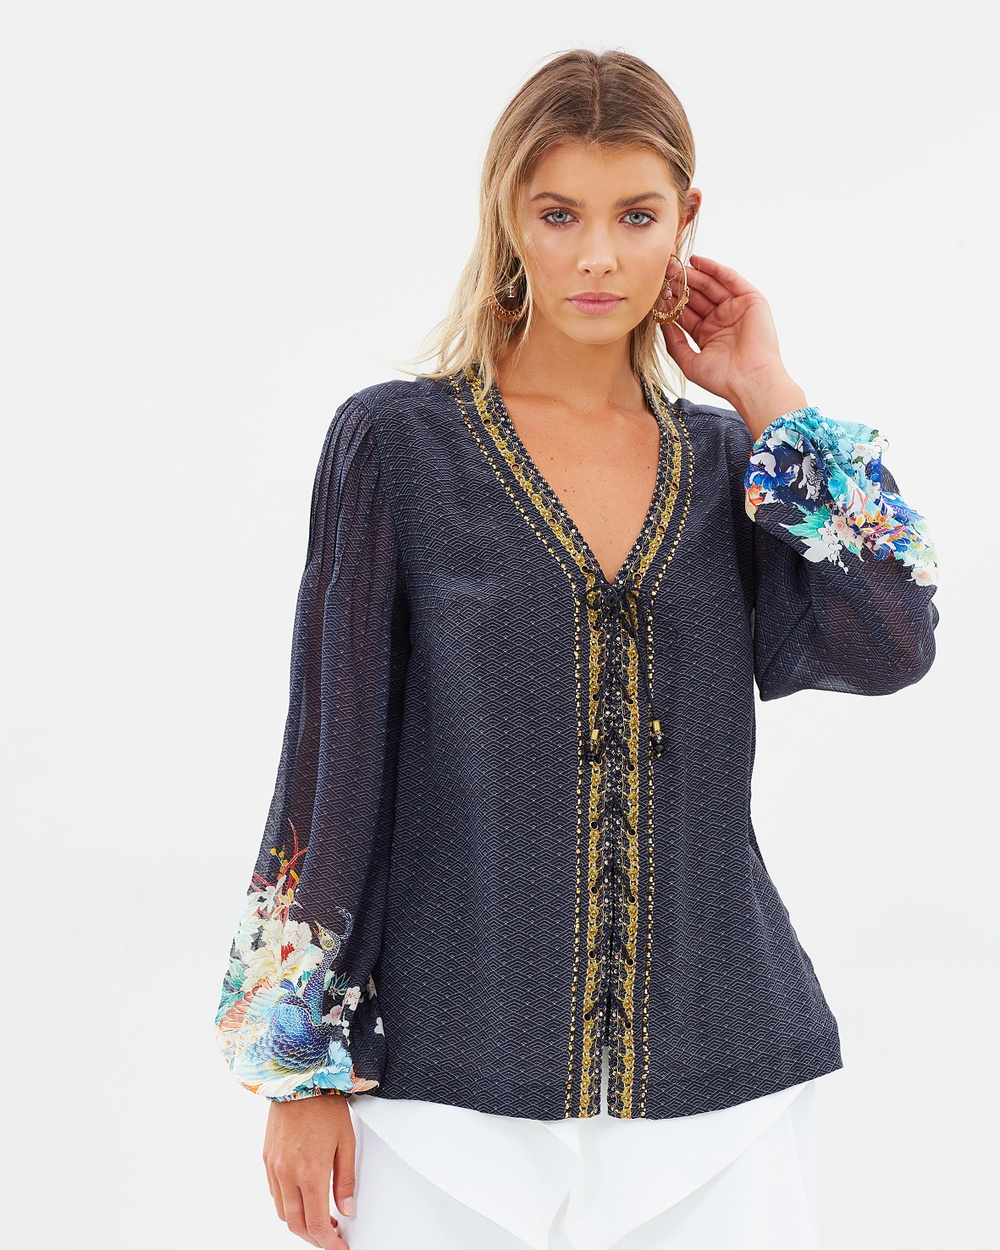 Camilla Peasant Blouse with Front Lacing Tops Up All Night Peasant Blouse with Front Lacing